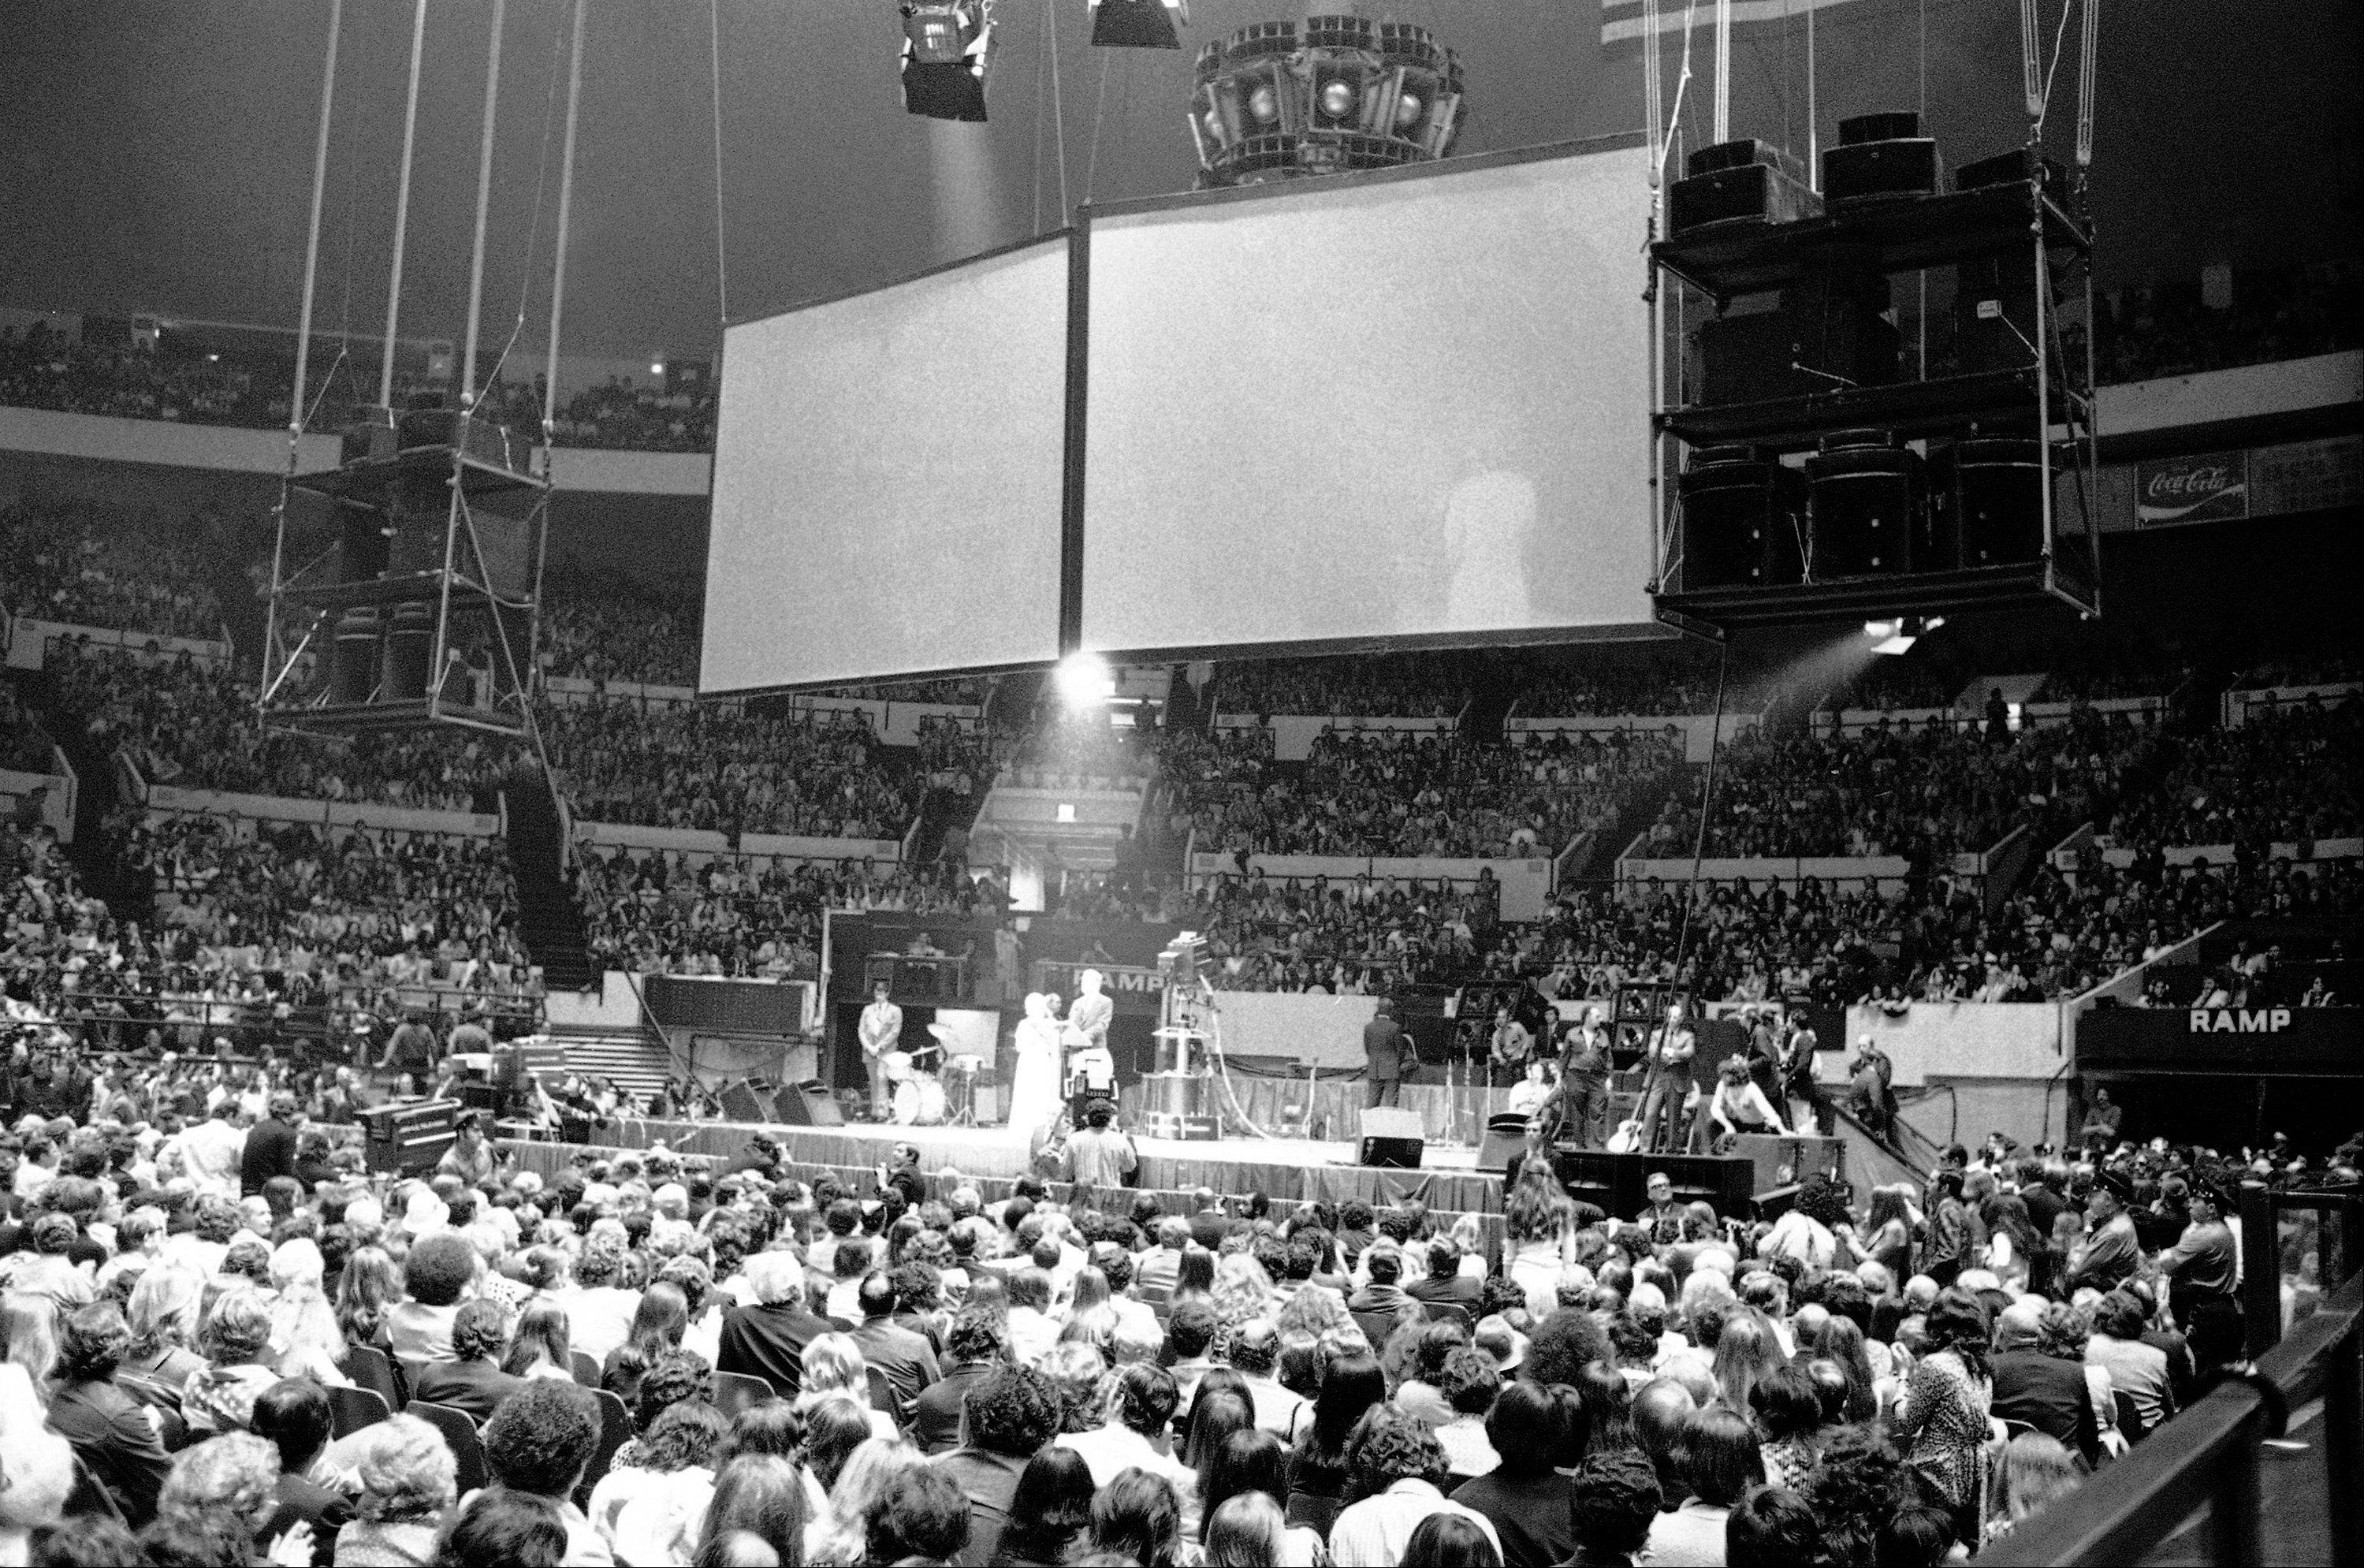 Sen. George McGovern, at center, addresses rally at New York�s Madison Square Garden, June 14, 1972. Crowd of about 20,000 was on hand to hear McGovern and to be entertained by various performers. McGovern is campaigning for the Democratic primary to be held in New York on June 20.